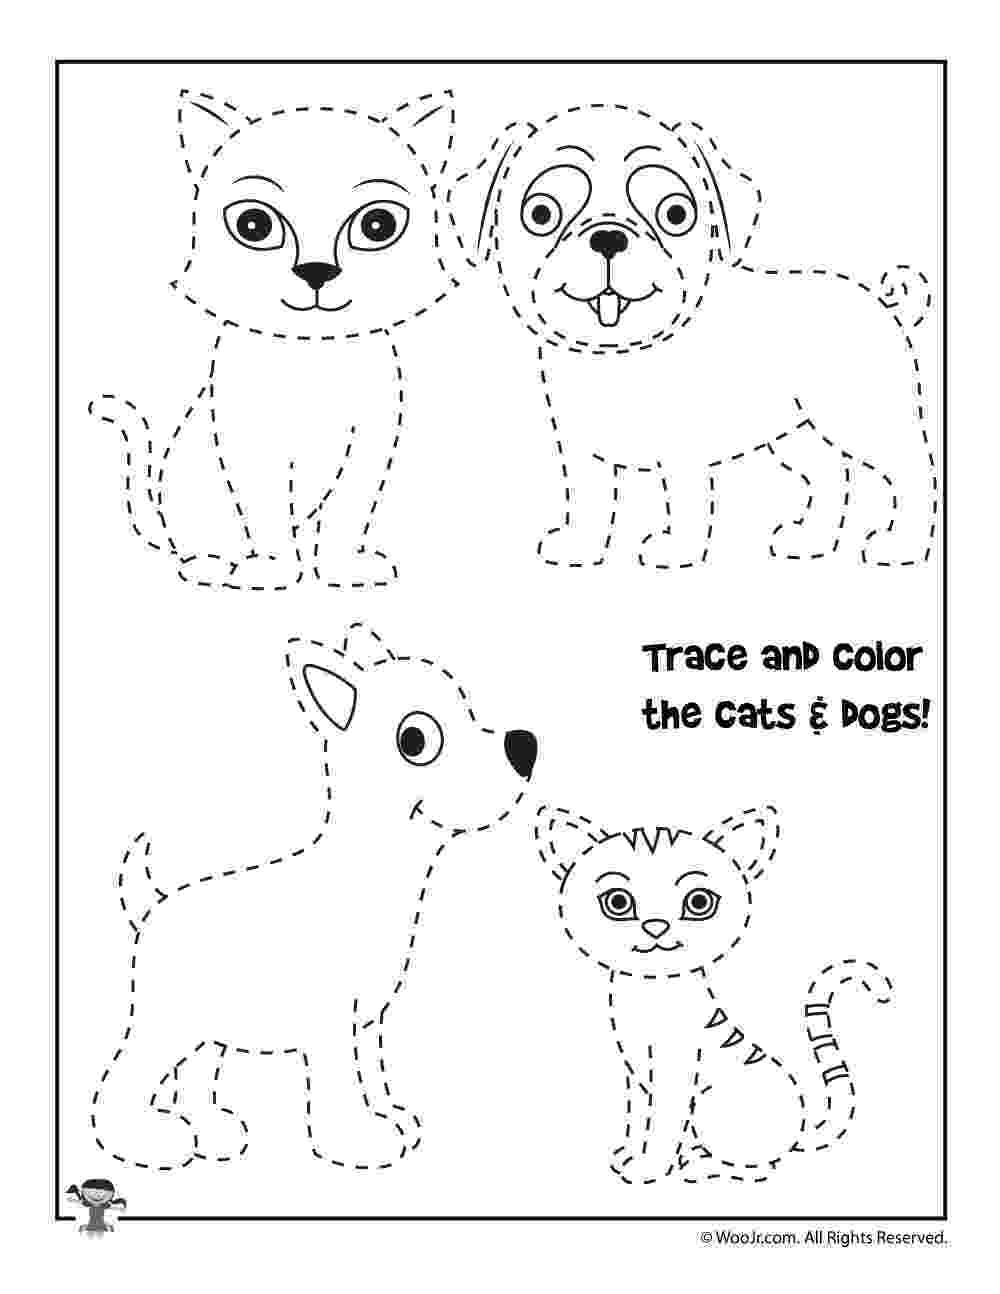 traceable dog pictures dog printables for kids dog activity pages pictures dog traceable